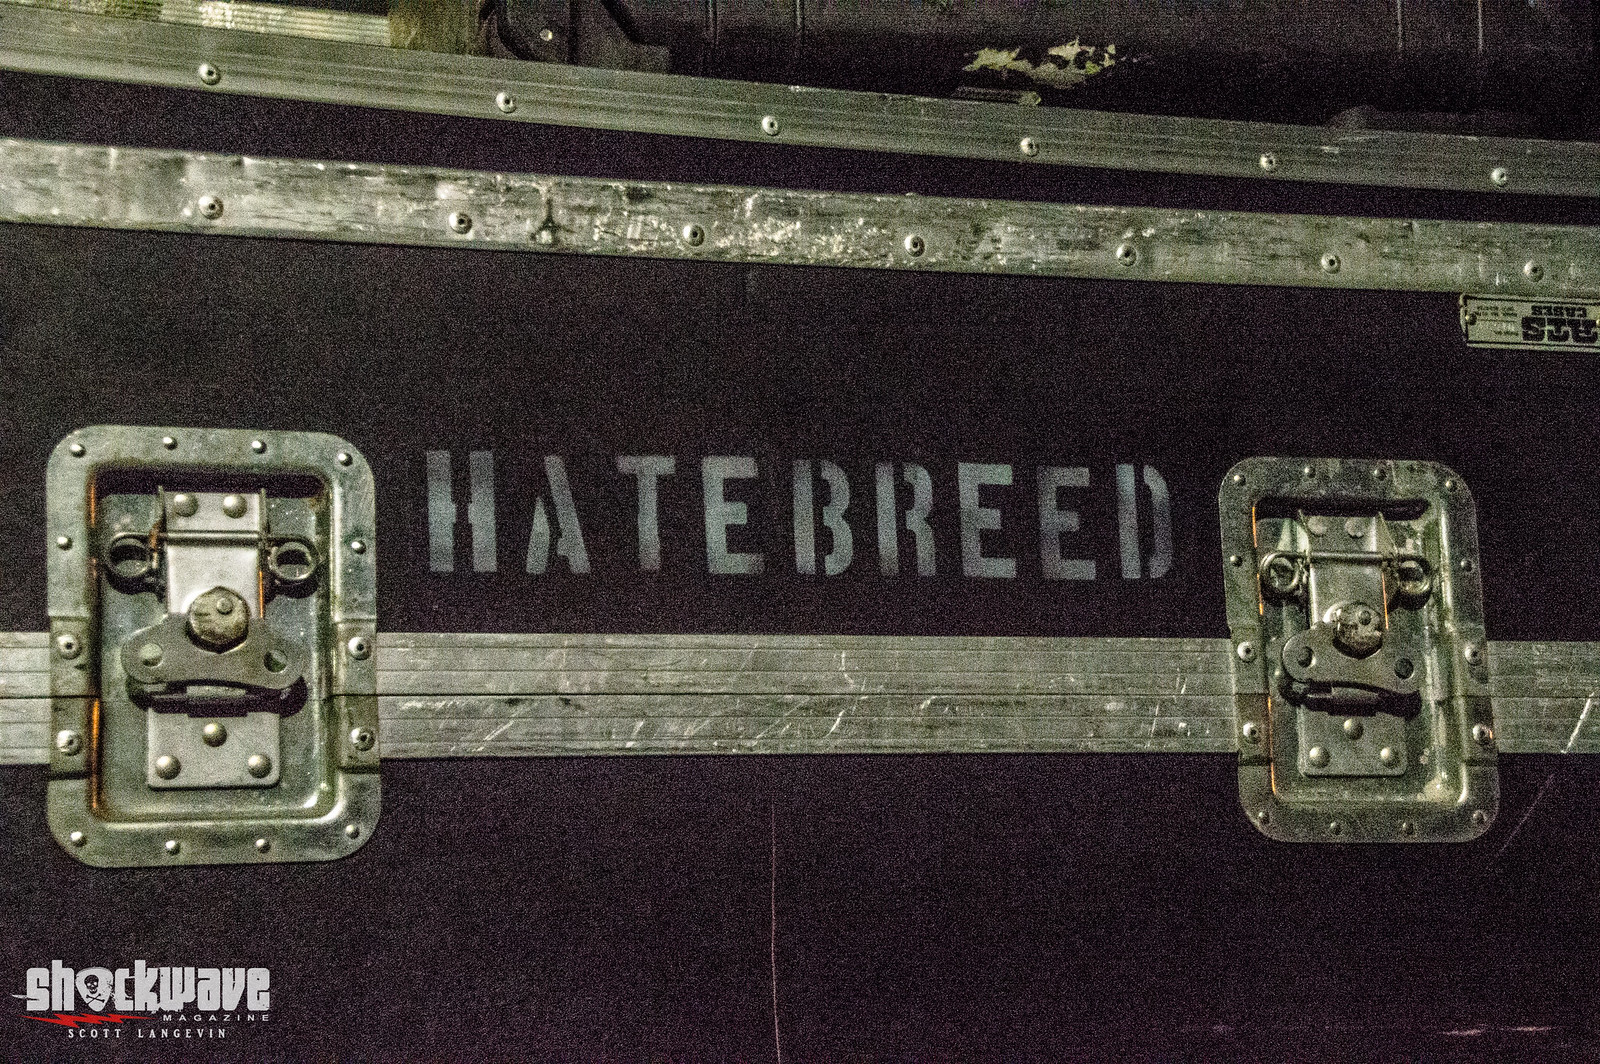 Hatebreed with DevilDriver and Devil You Know